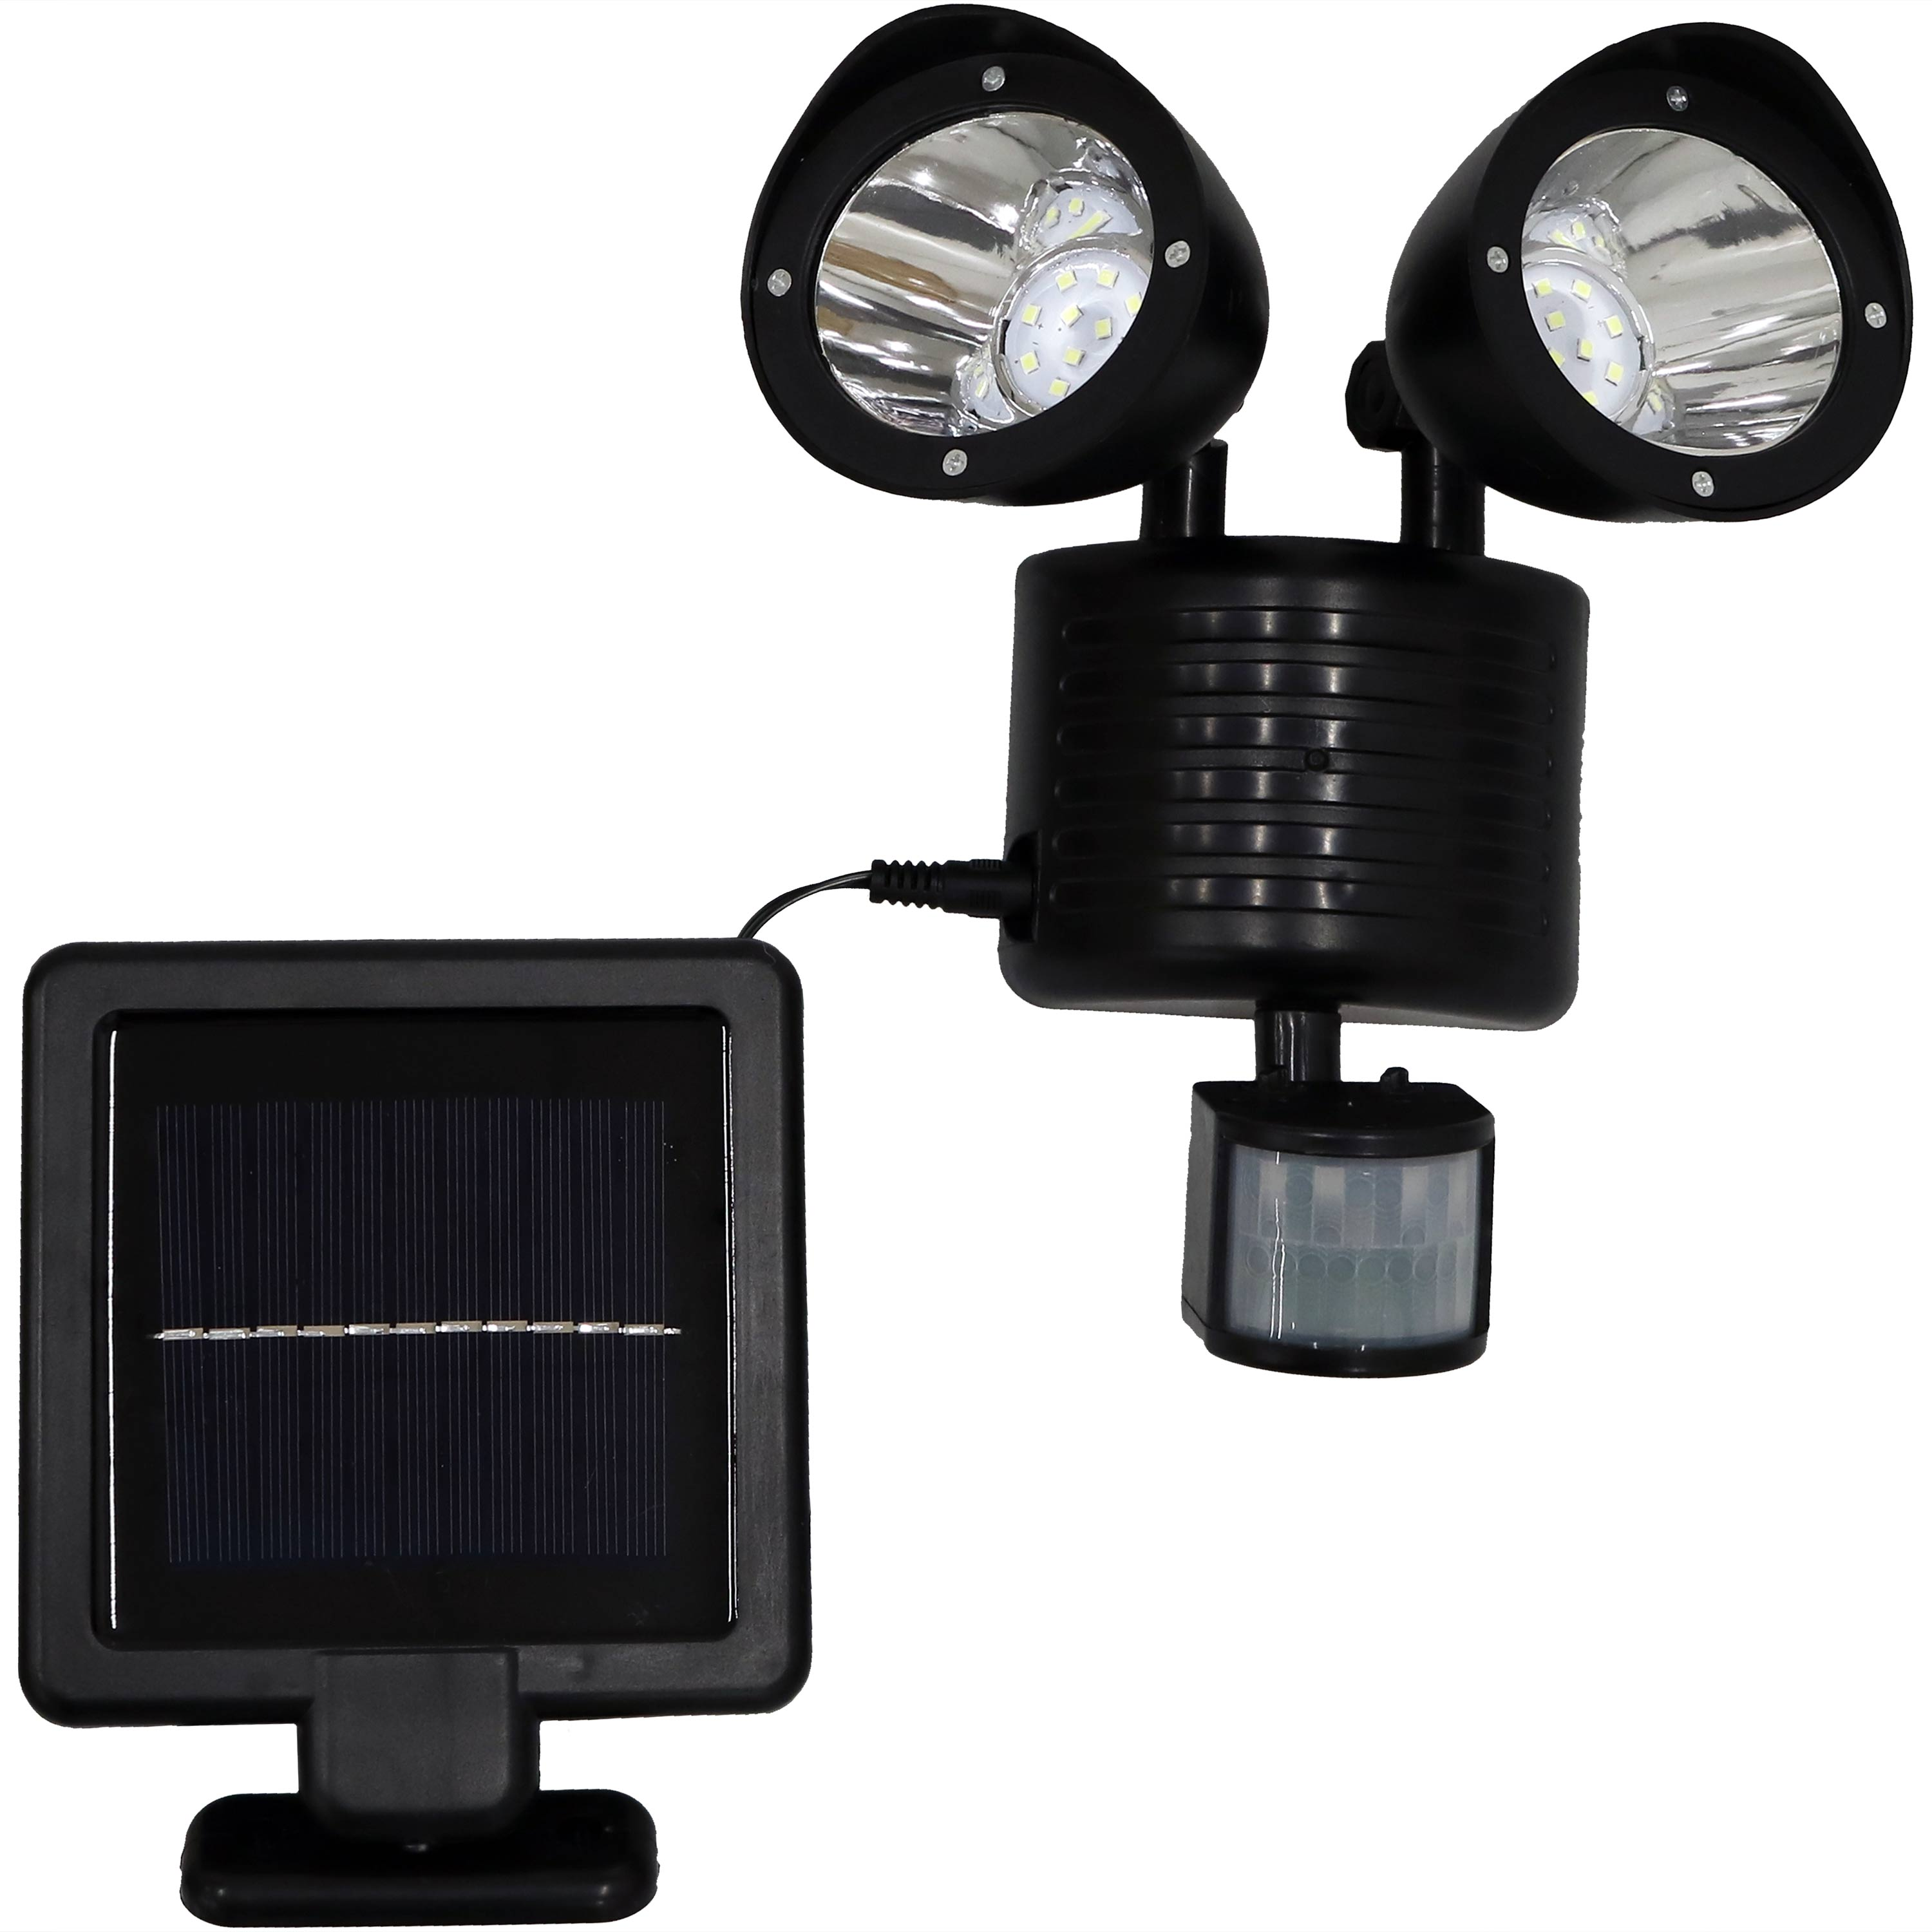 Sunnydaze Outdoor Solar LED Motion Sensor Dual Head Security Light